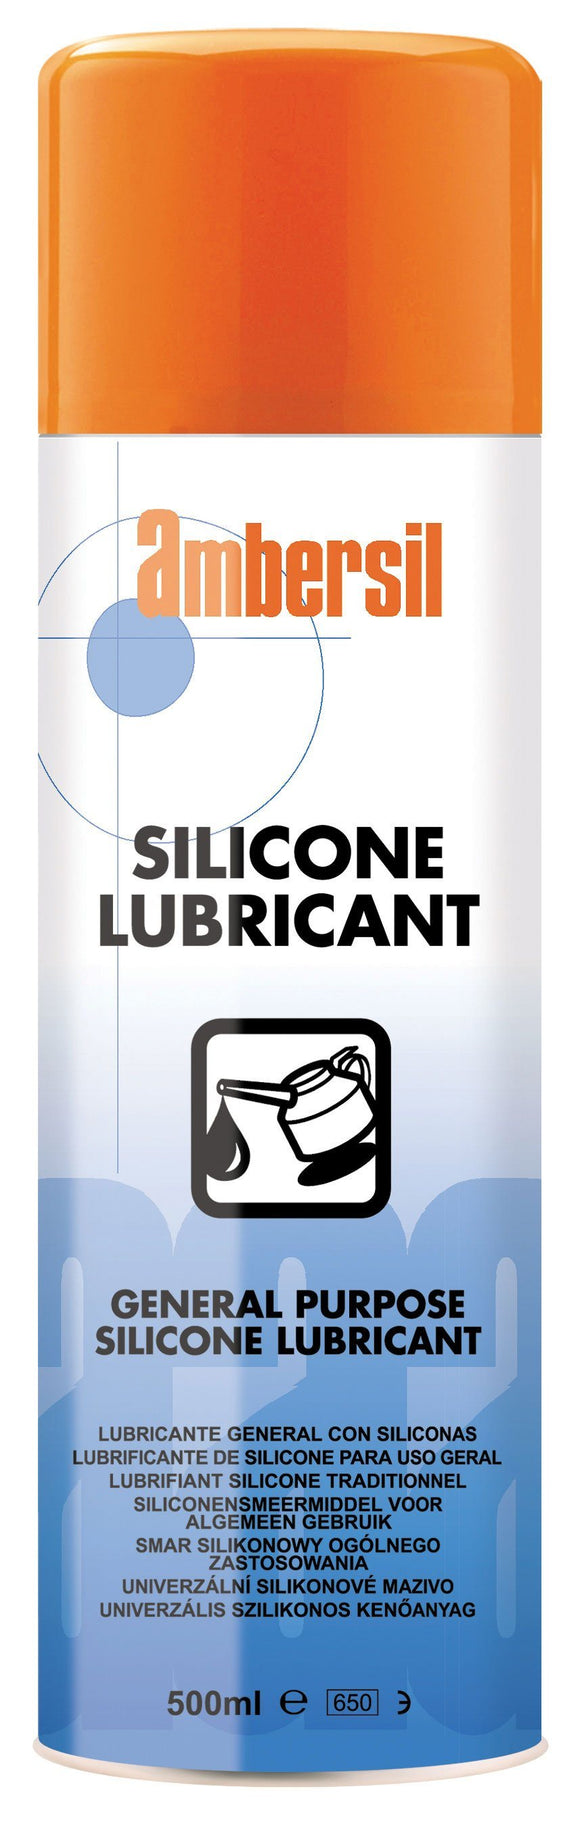 Mould_Sprays_and_lubricants - General Purpose Silicone Lubricant Spray And Release Agent